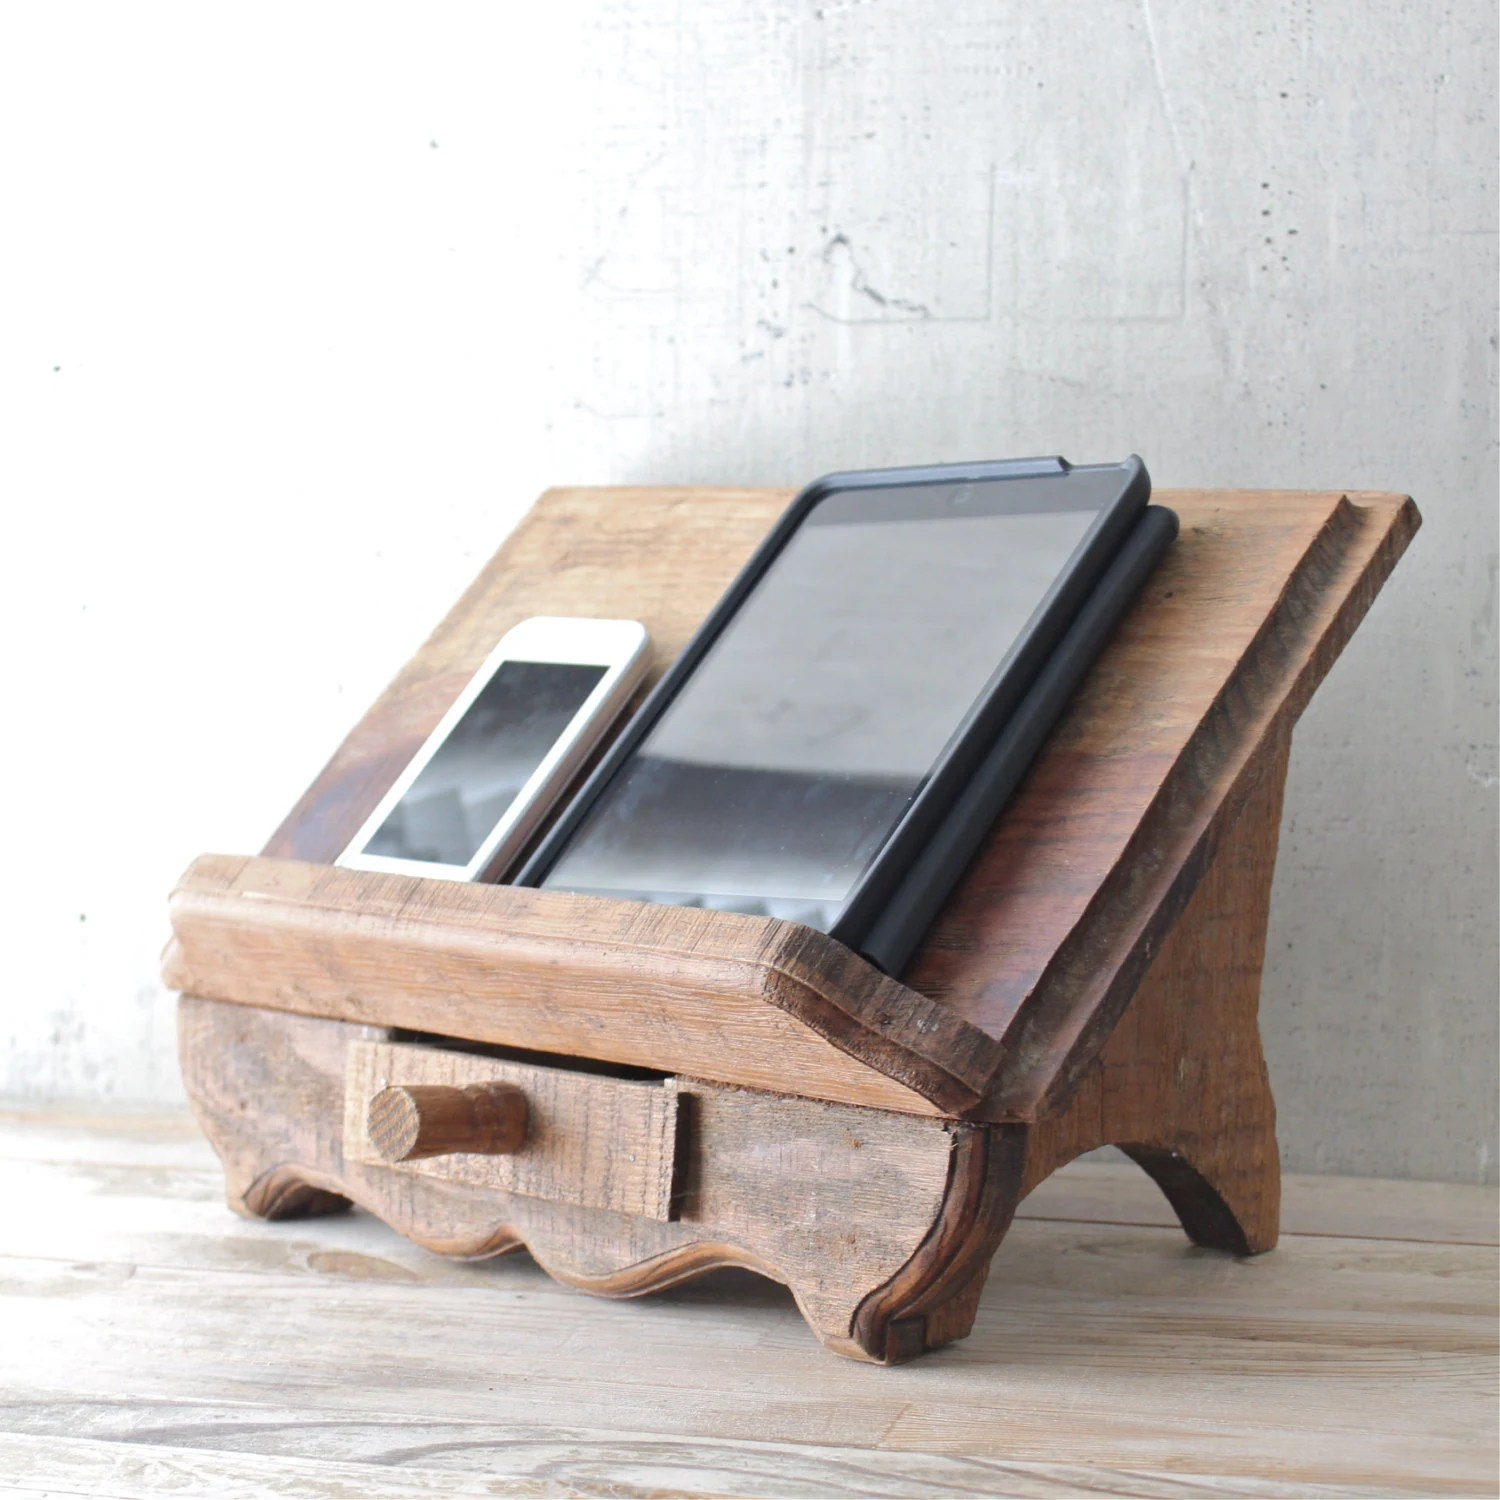 Book Holding Stand Vintage Wooden Book Stand By Lovintagefinds On Etsy